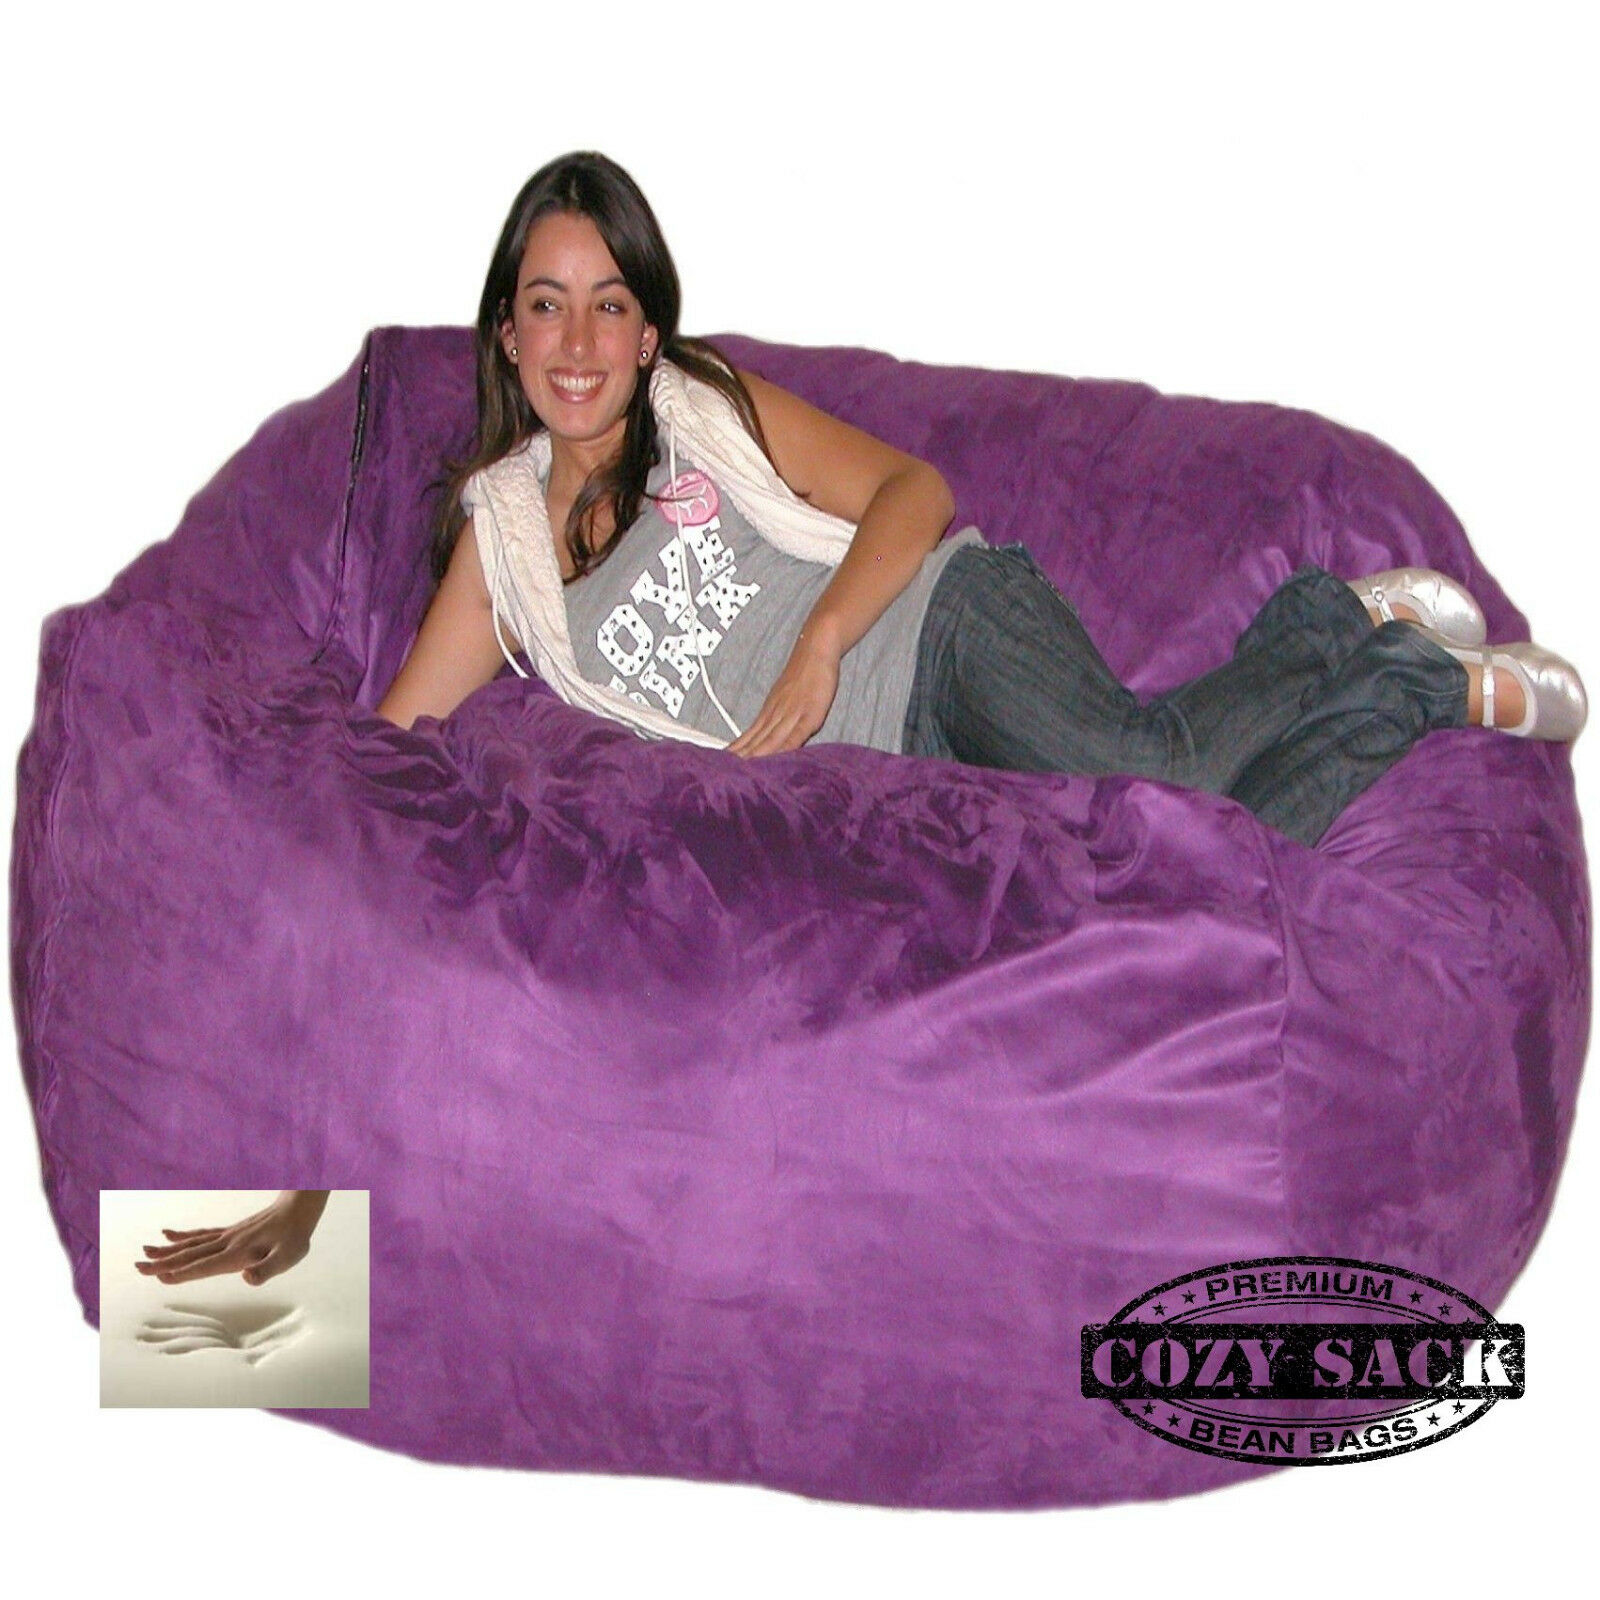 HUGE Bean Bag Chair Factory Direct Cozy Sack 6 Foam Filled Purple